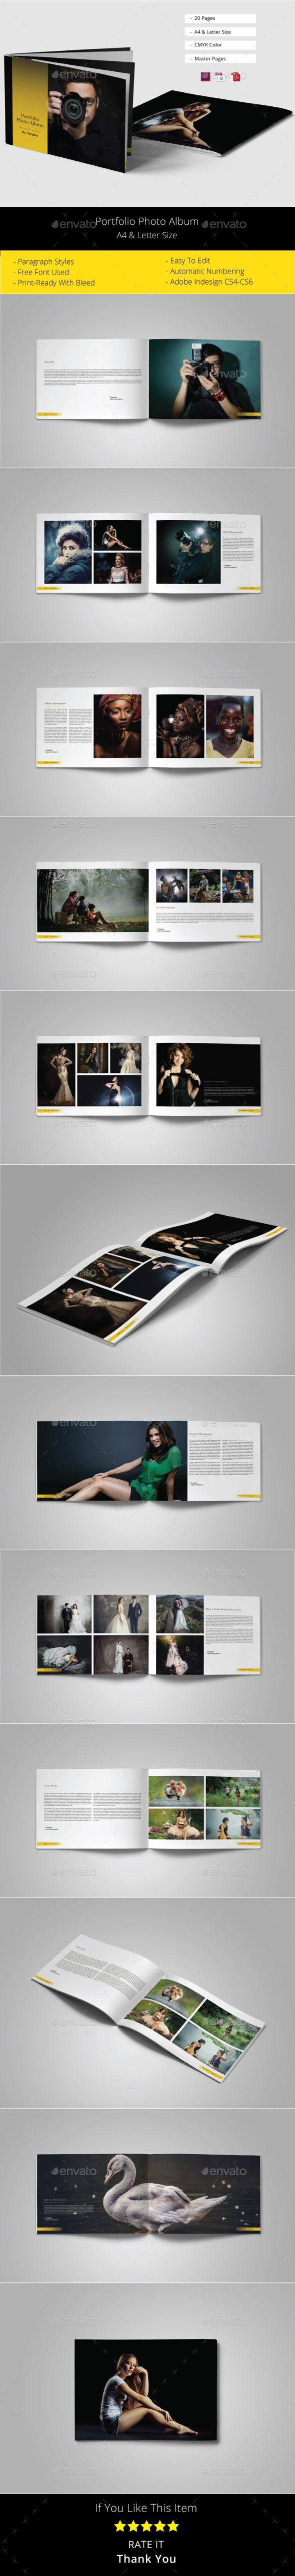 Portfolio Photo Album Template | Photo album printing, Template and ...